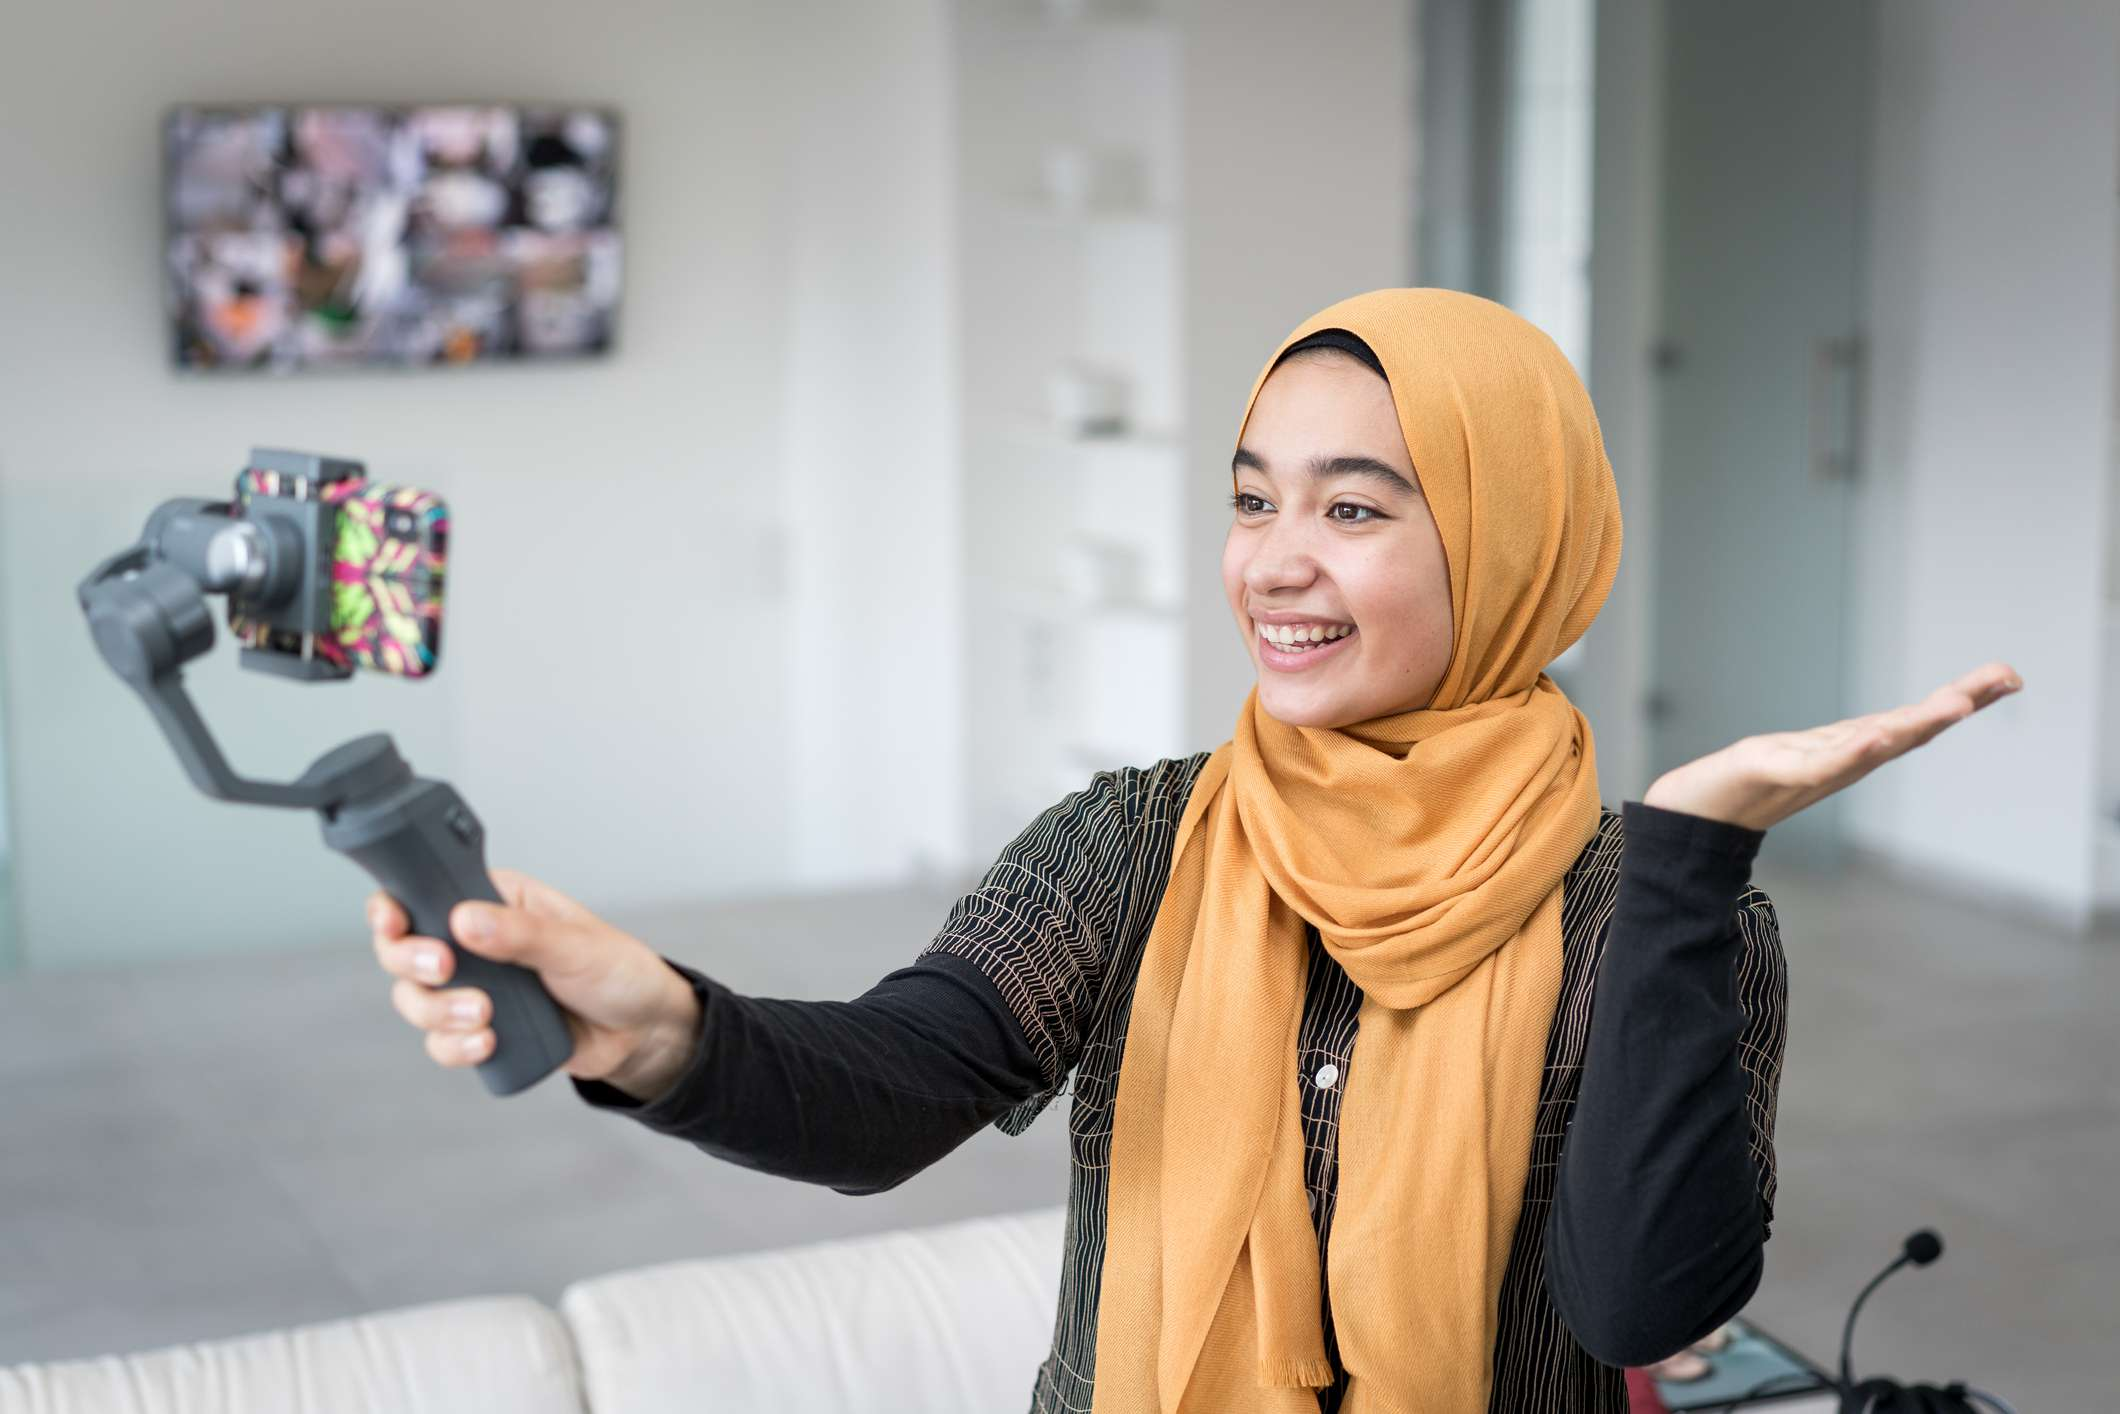 woman making video using smartphone and steady